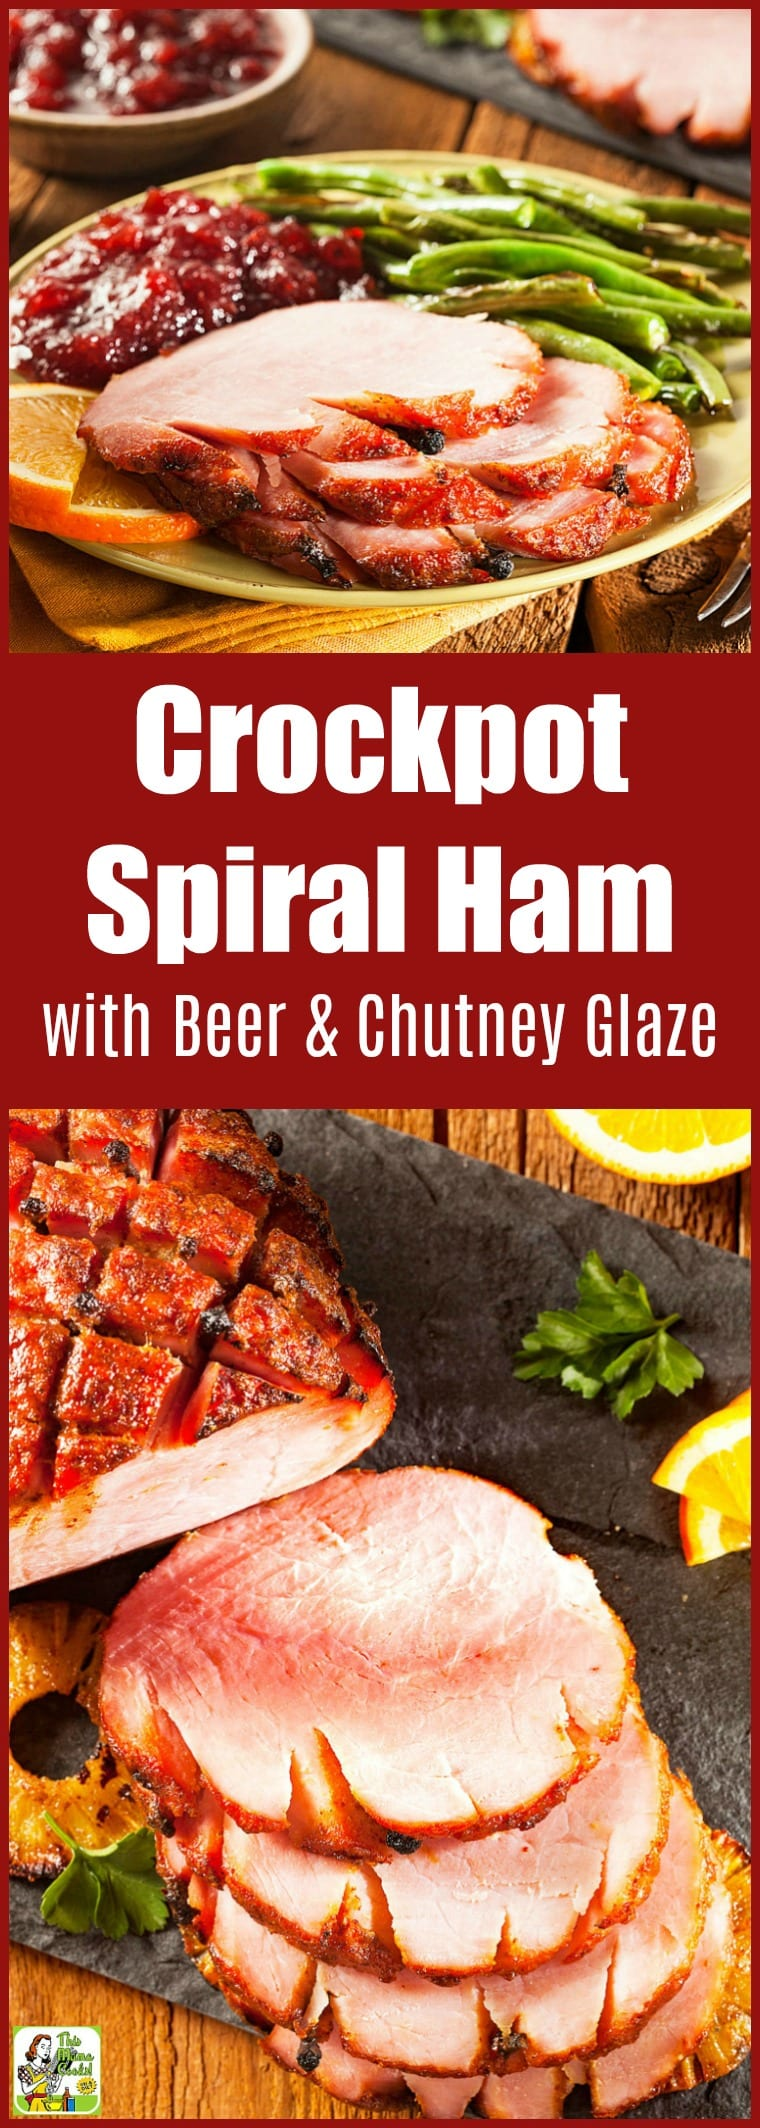 Crockpot Spiral Ham Recipe with Beer and Chutney Glaze